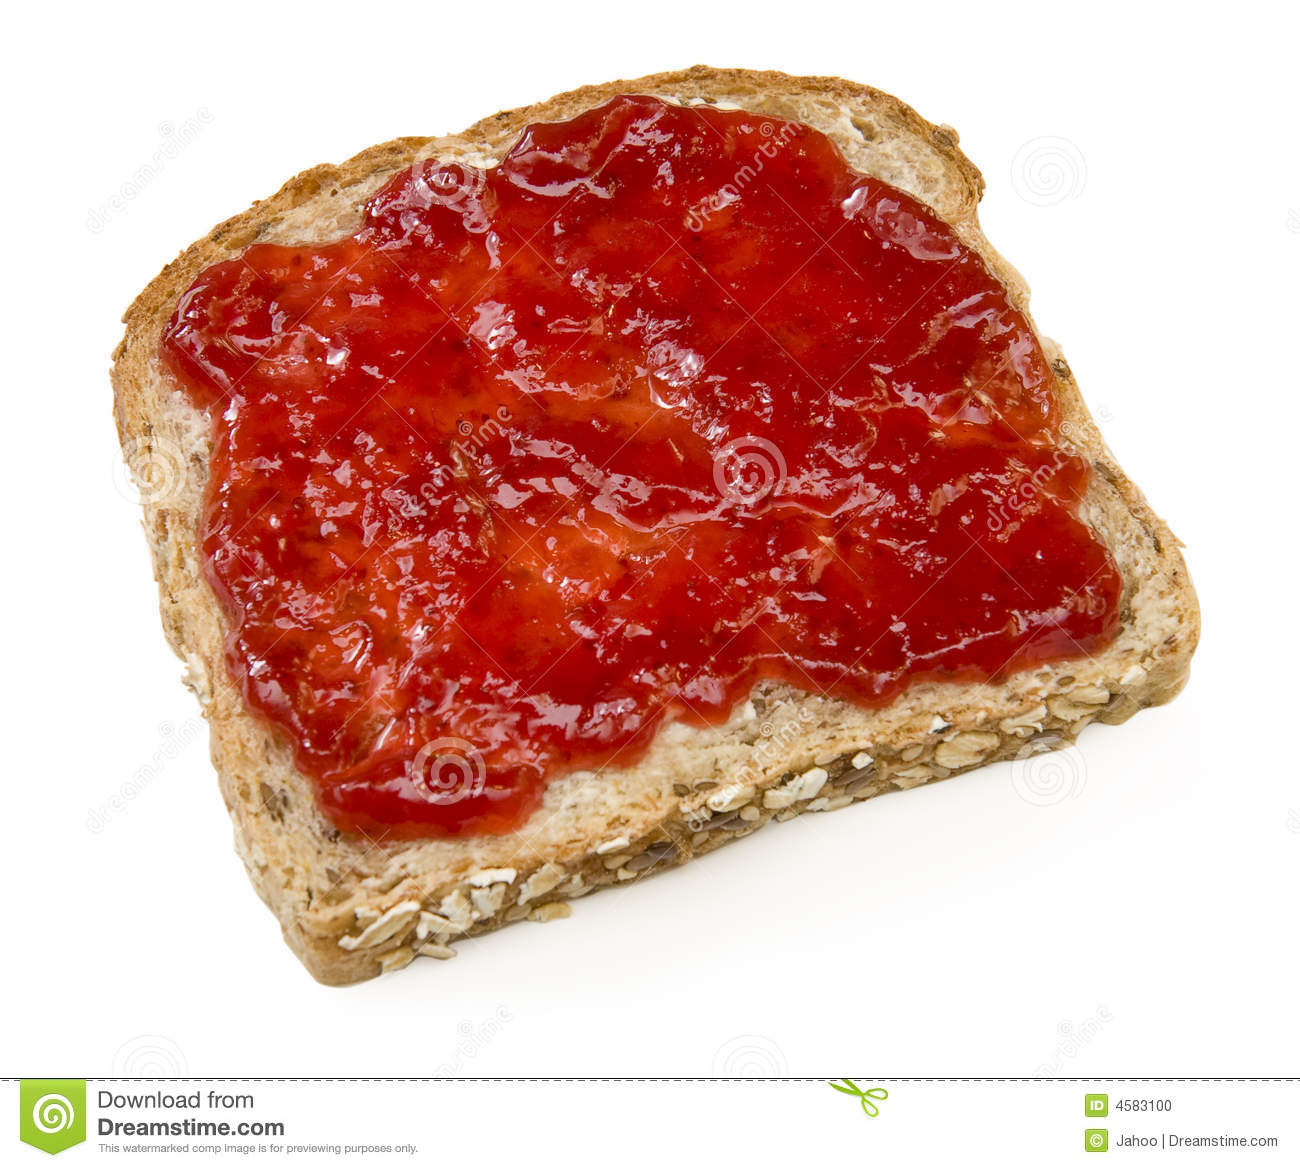 Strawberry Jam Sandwich Isolated On White Stock Photo - Image: 4583100